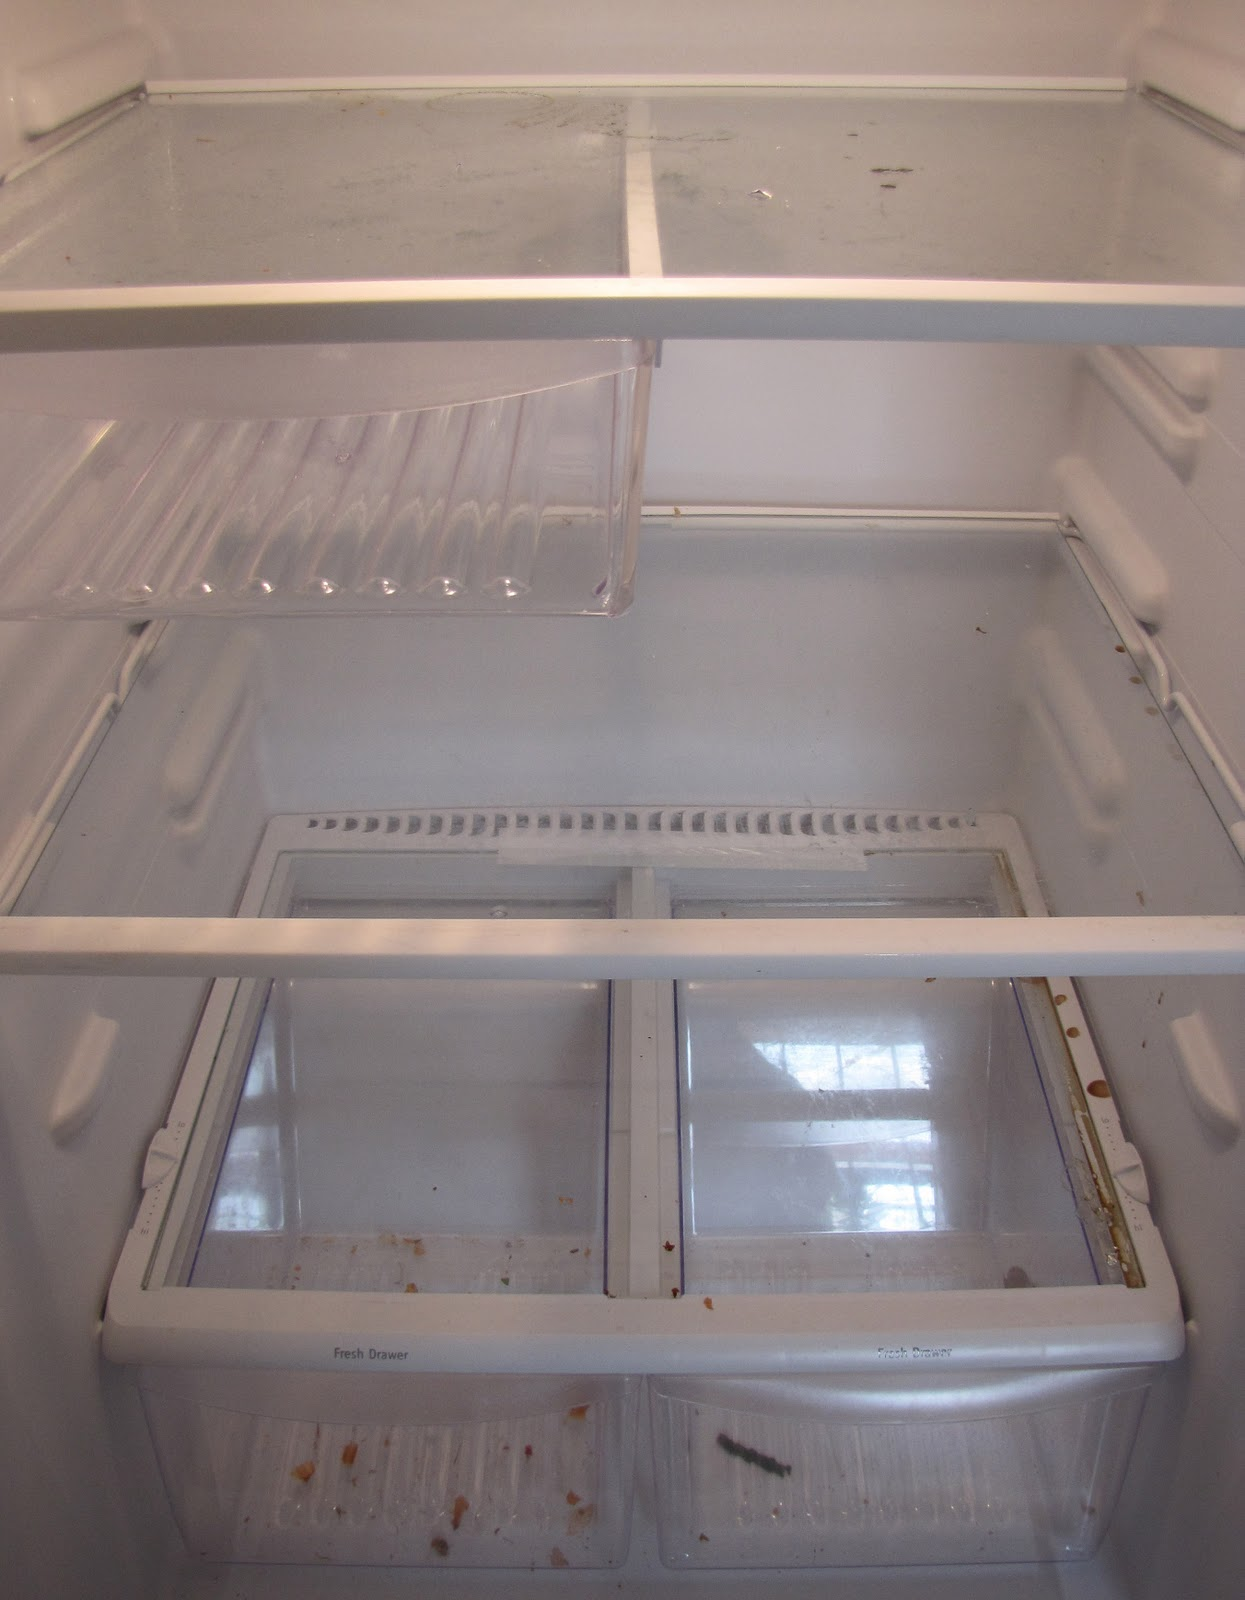 how to clean the inside of a fridge